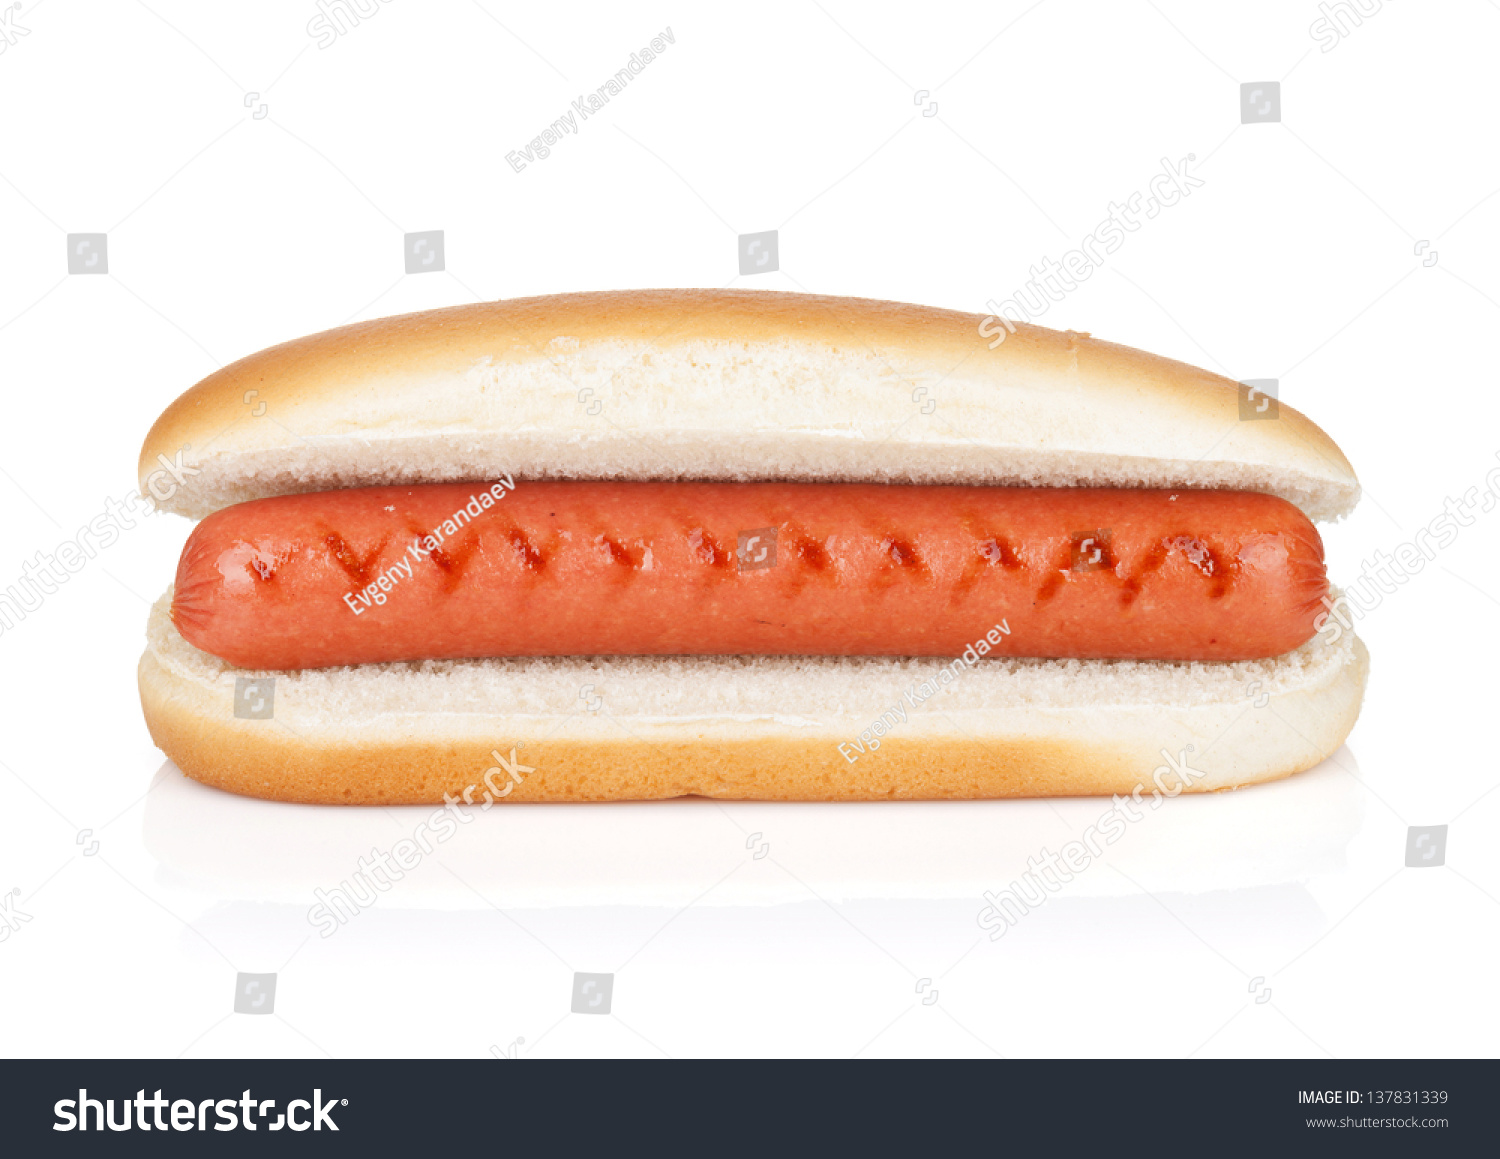 original hot dog isolated on white background stock photo 137831339 shutterstock. Black Bedroom Furniture Sets. Home Design Ideas